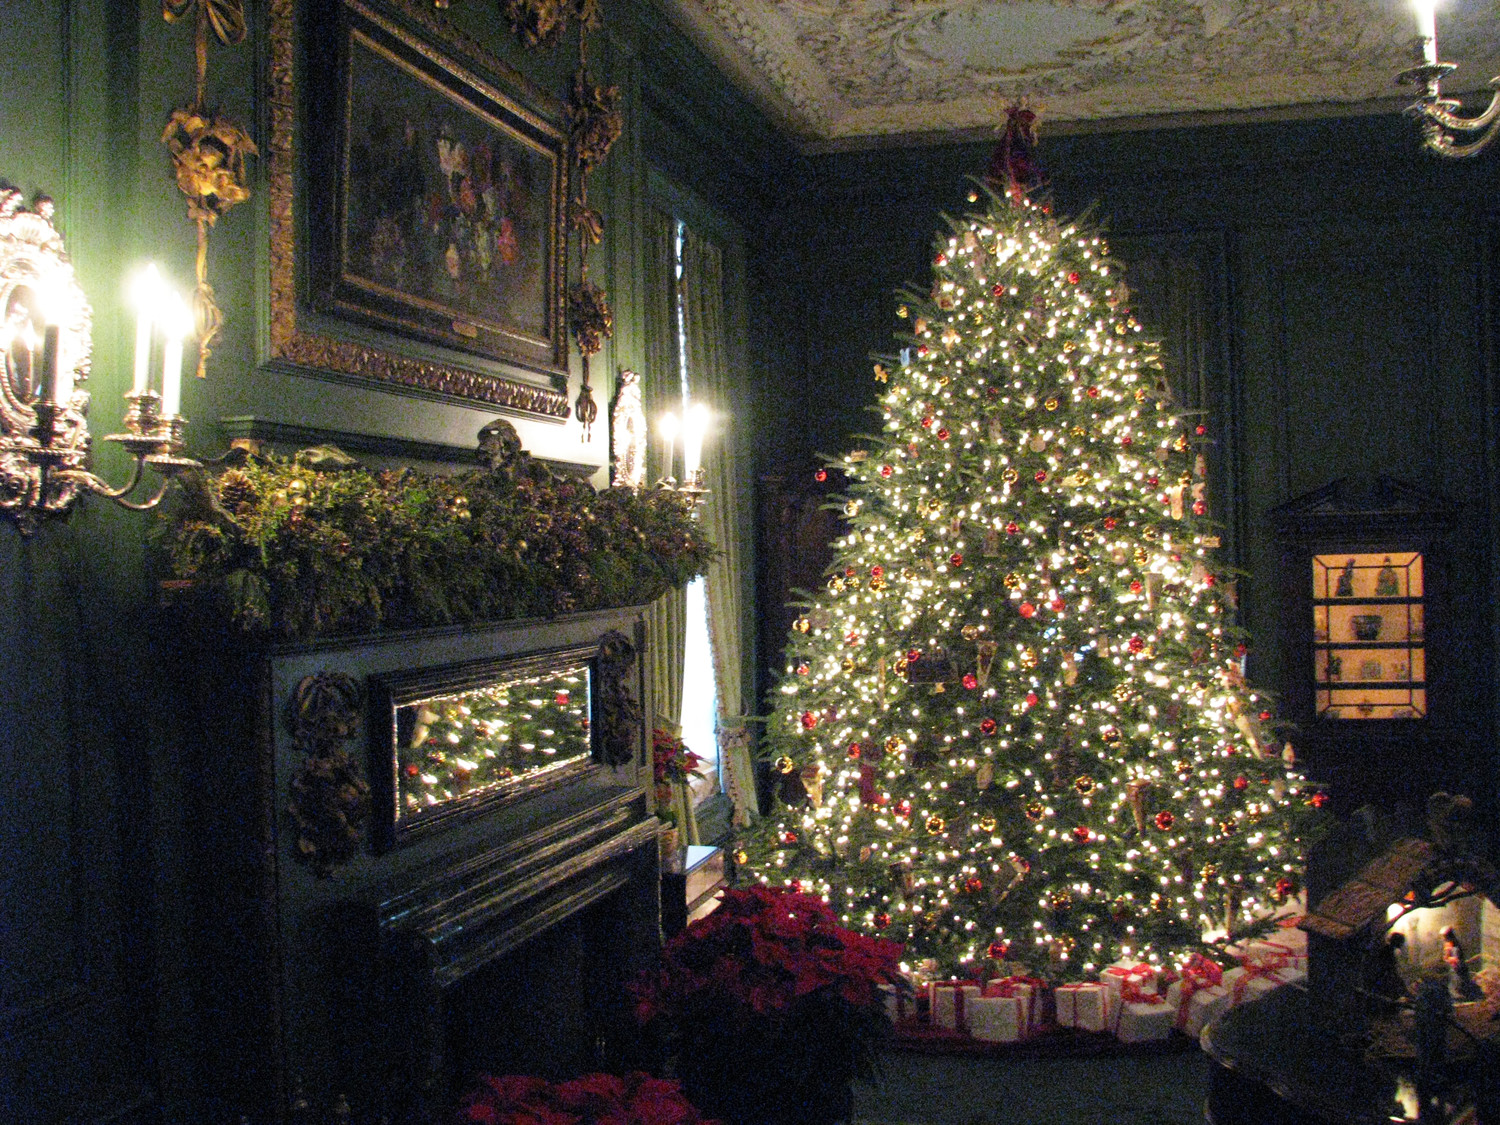 Old Westbury Gardens' much-loved annual seasonal bash is in full swing at Westbury House. The home's period rooms glitter with their holiday finery.